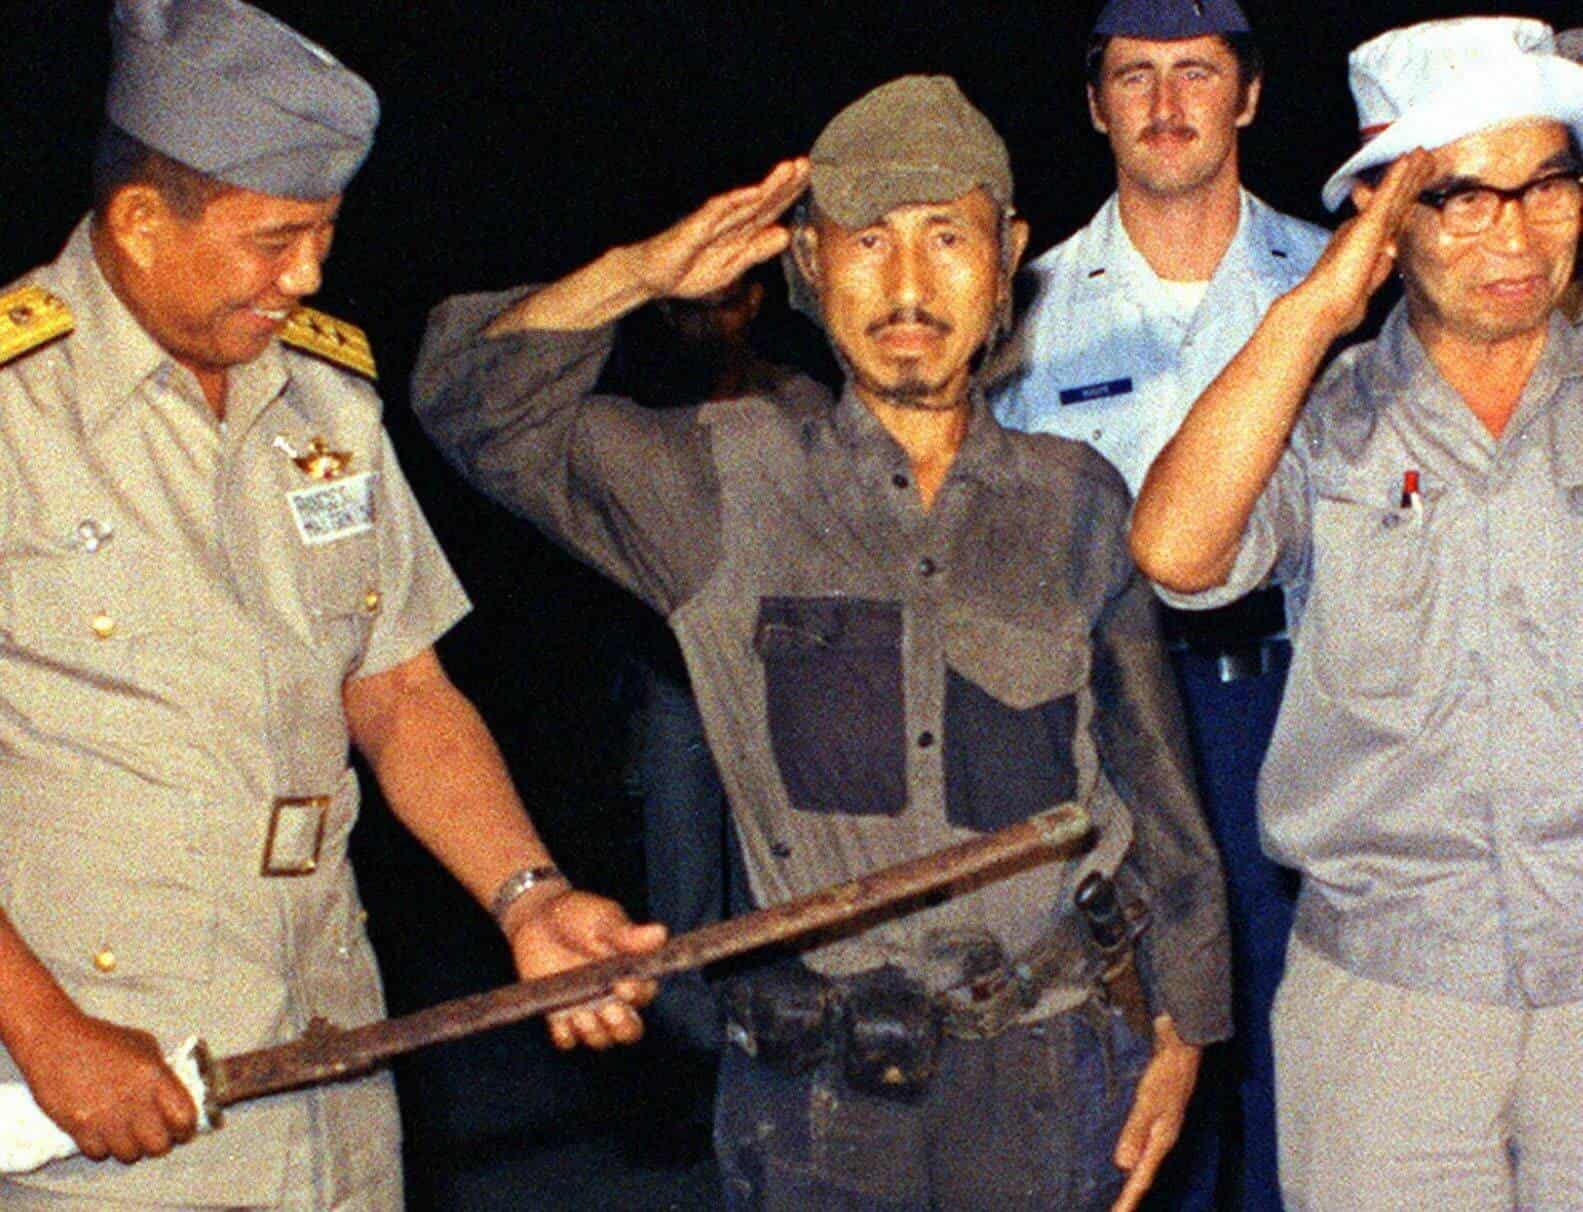 The incredible survival story of Hiroo Onoda